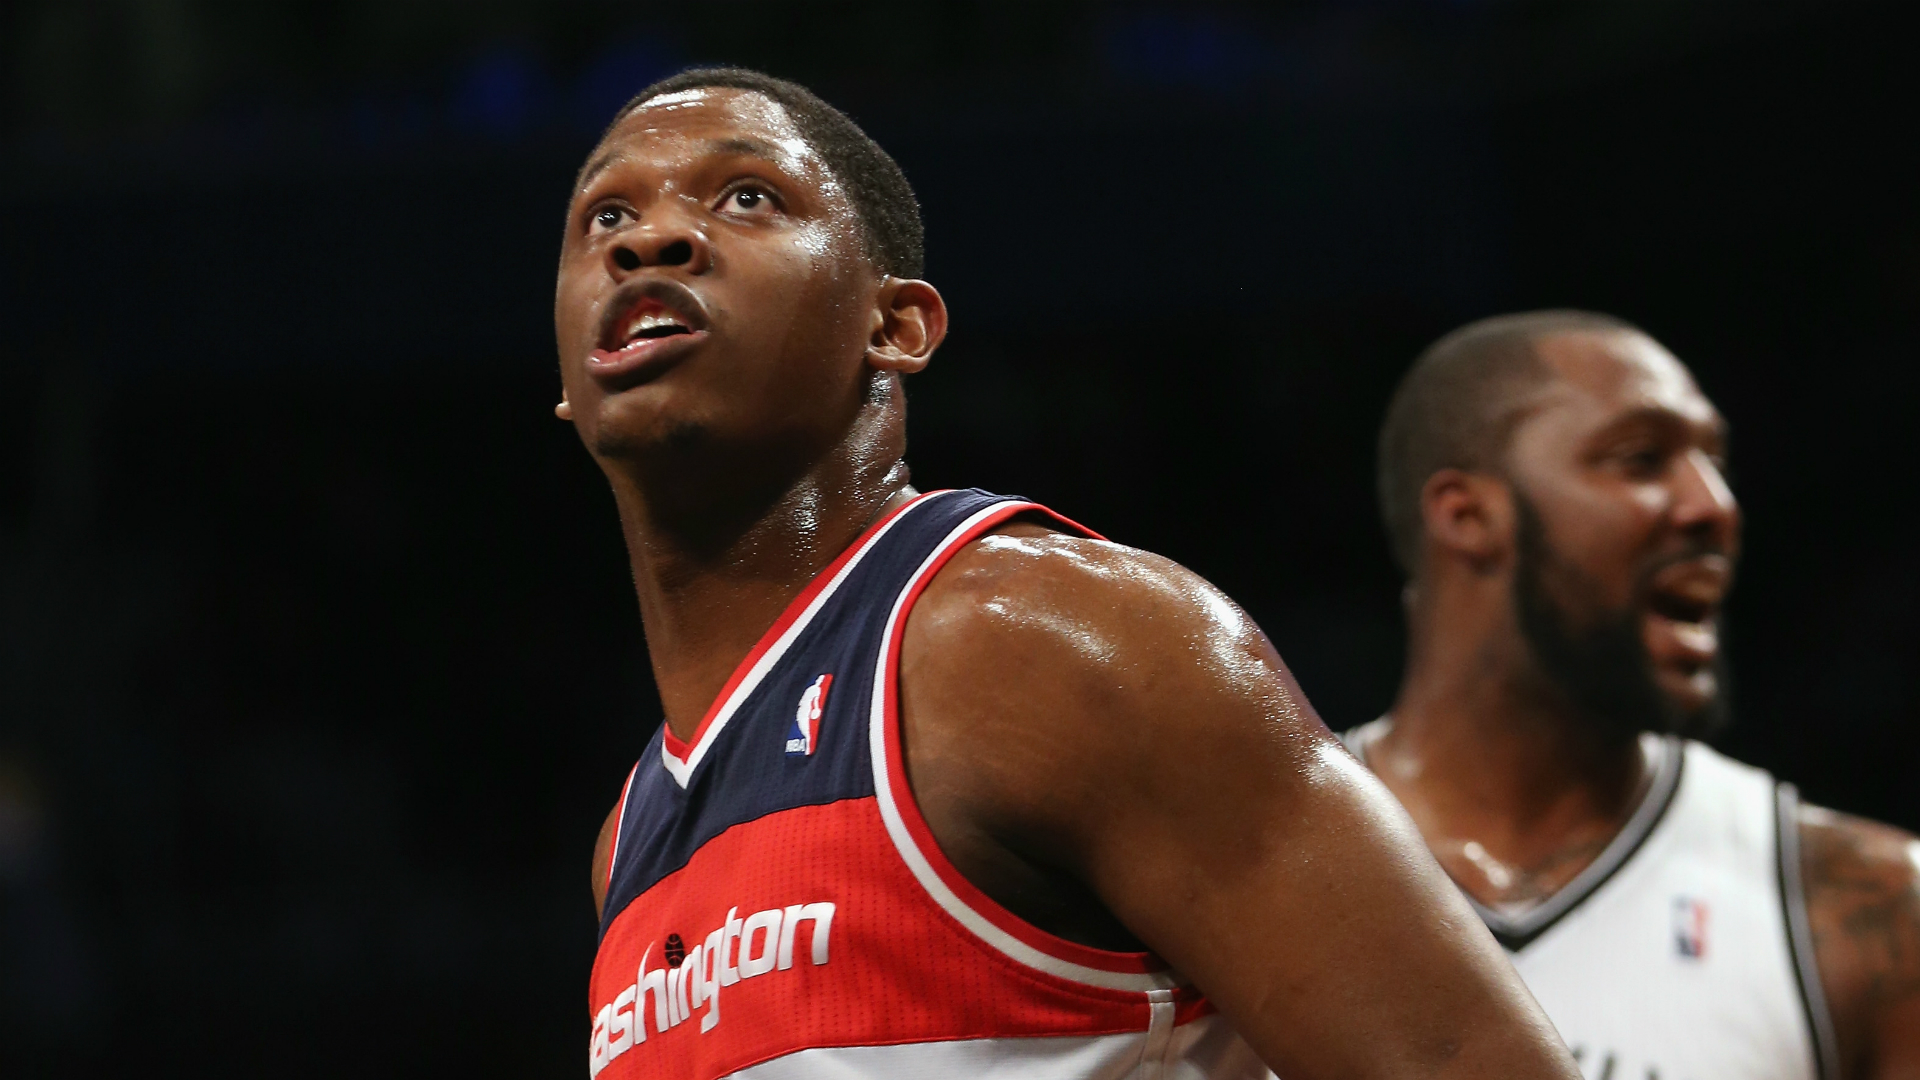 Kevin Seraphin signs 1-year contract with Knicks, reports say